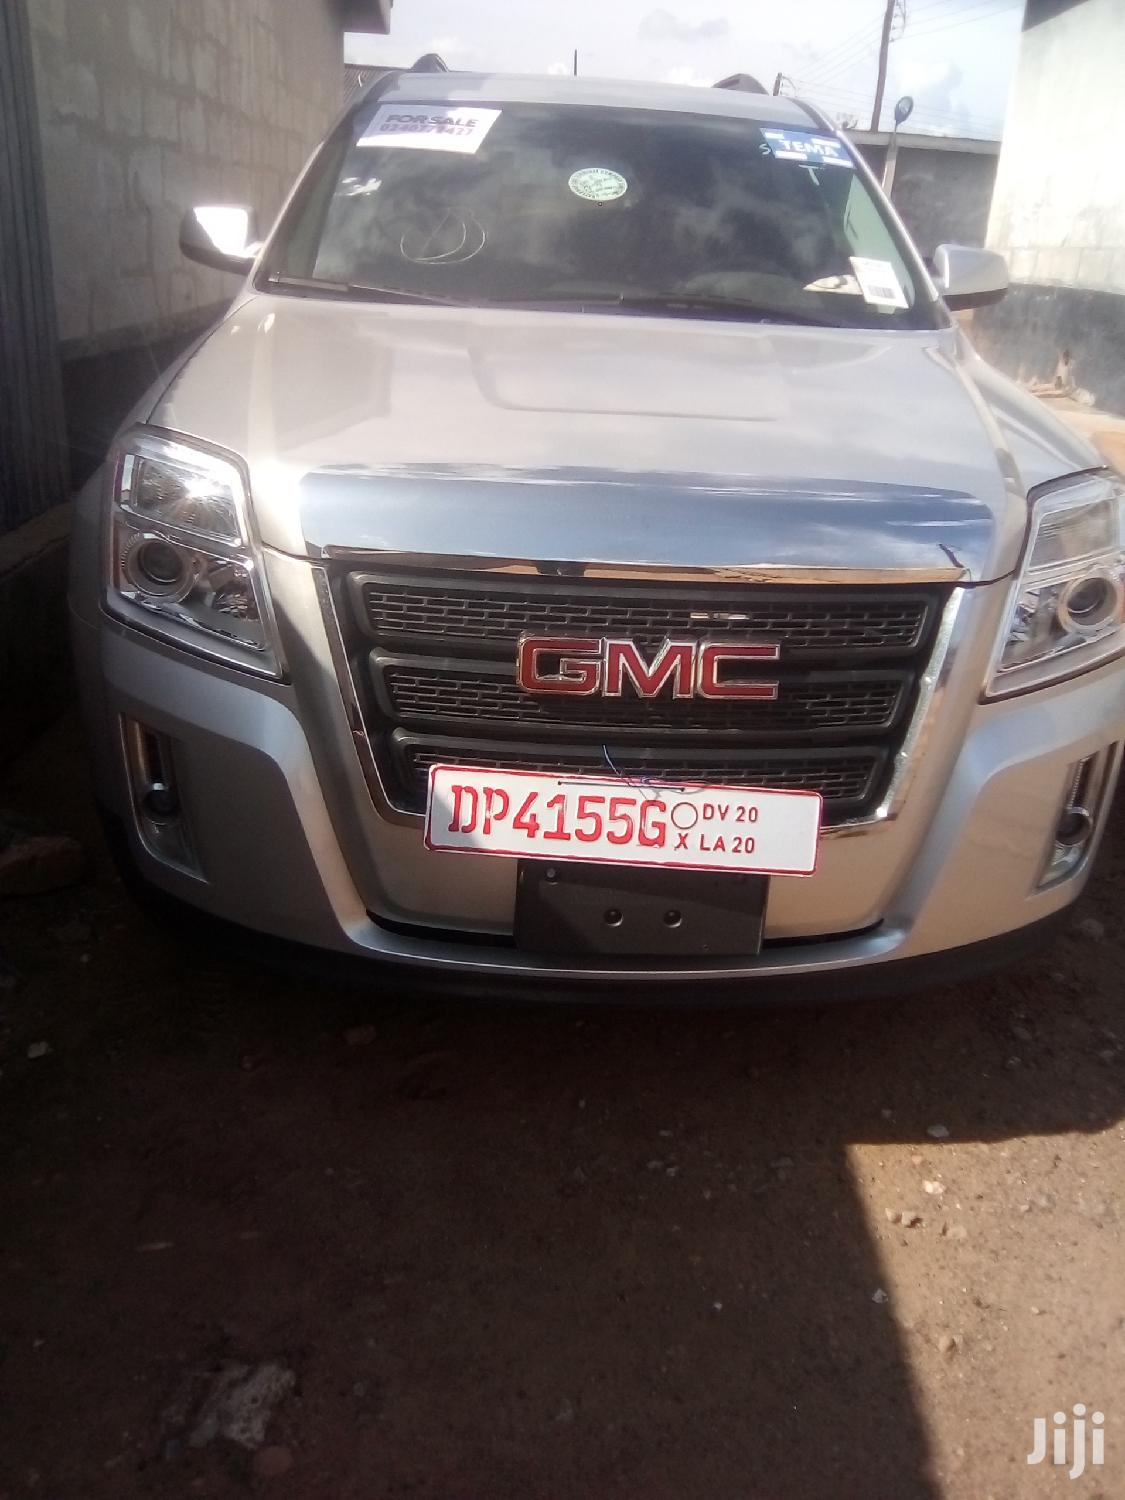 GMC Terrain 2012 SLE-1 FWD Silver | Cars for sale in Sunyani Municipal, Brong Ahafo, Ghana